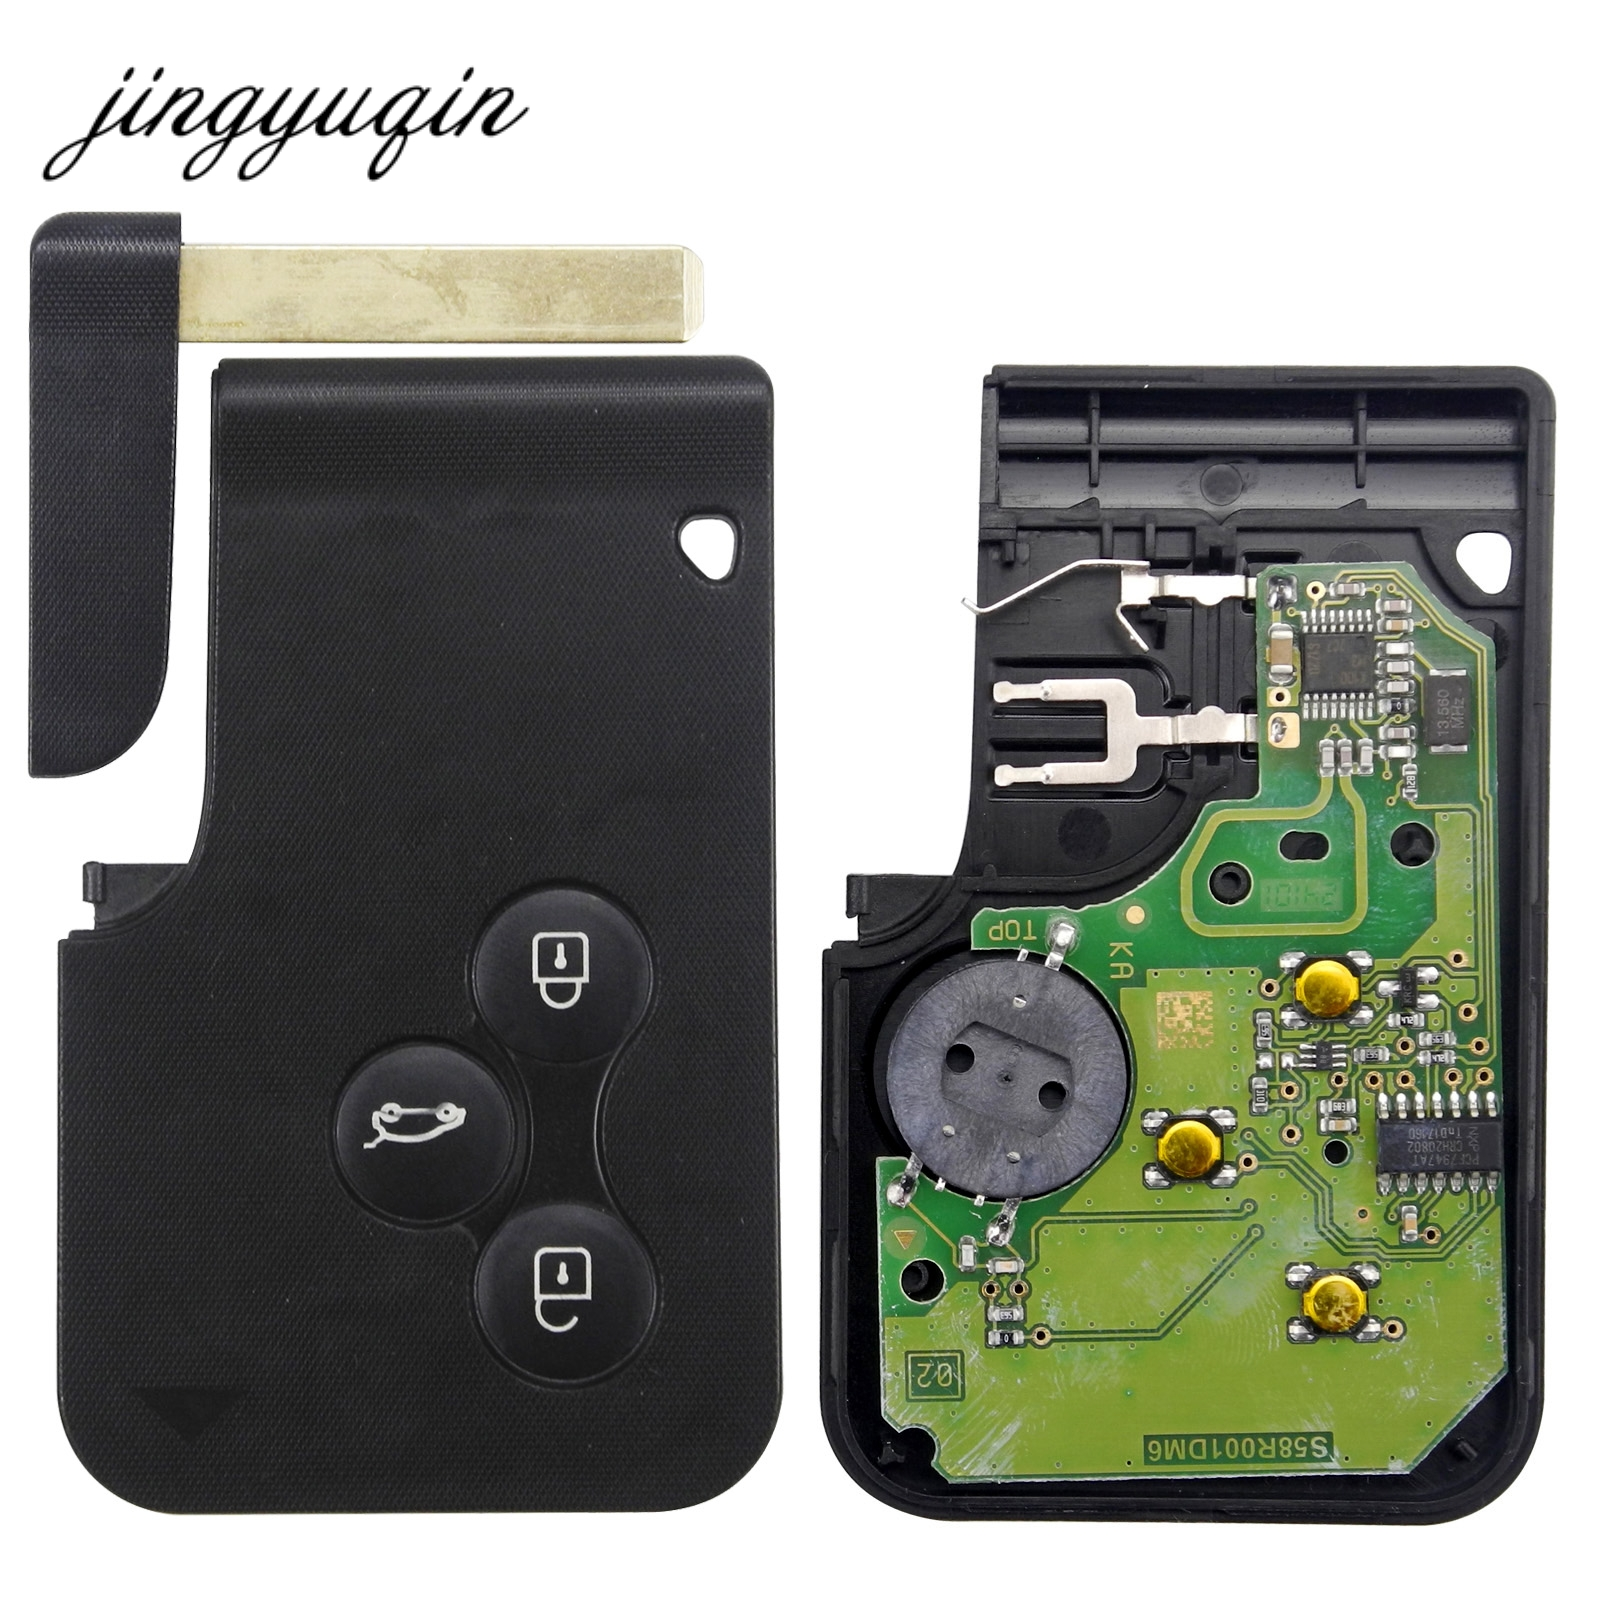 jingyuqin Smart Key Card for Renault Megane II Scenic II Grand Scenic 2003-2008 433mhz PCF7947 Chip ID46 3 Button Remote PCB комплект дефлекторов vinguru накладные скотч для renault scenic ii 2003 2009 минивэн 4 шт